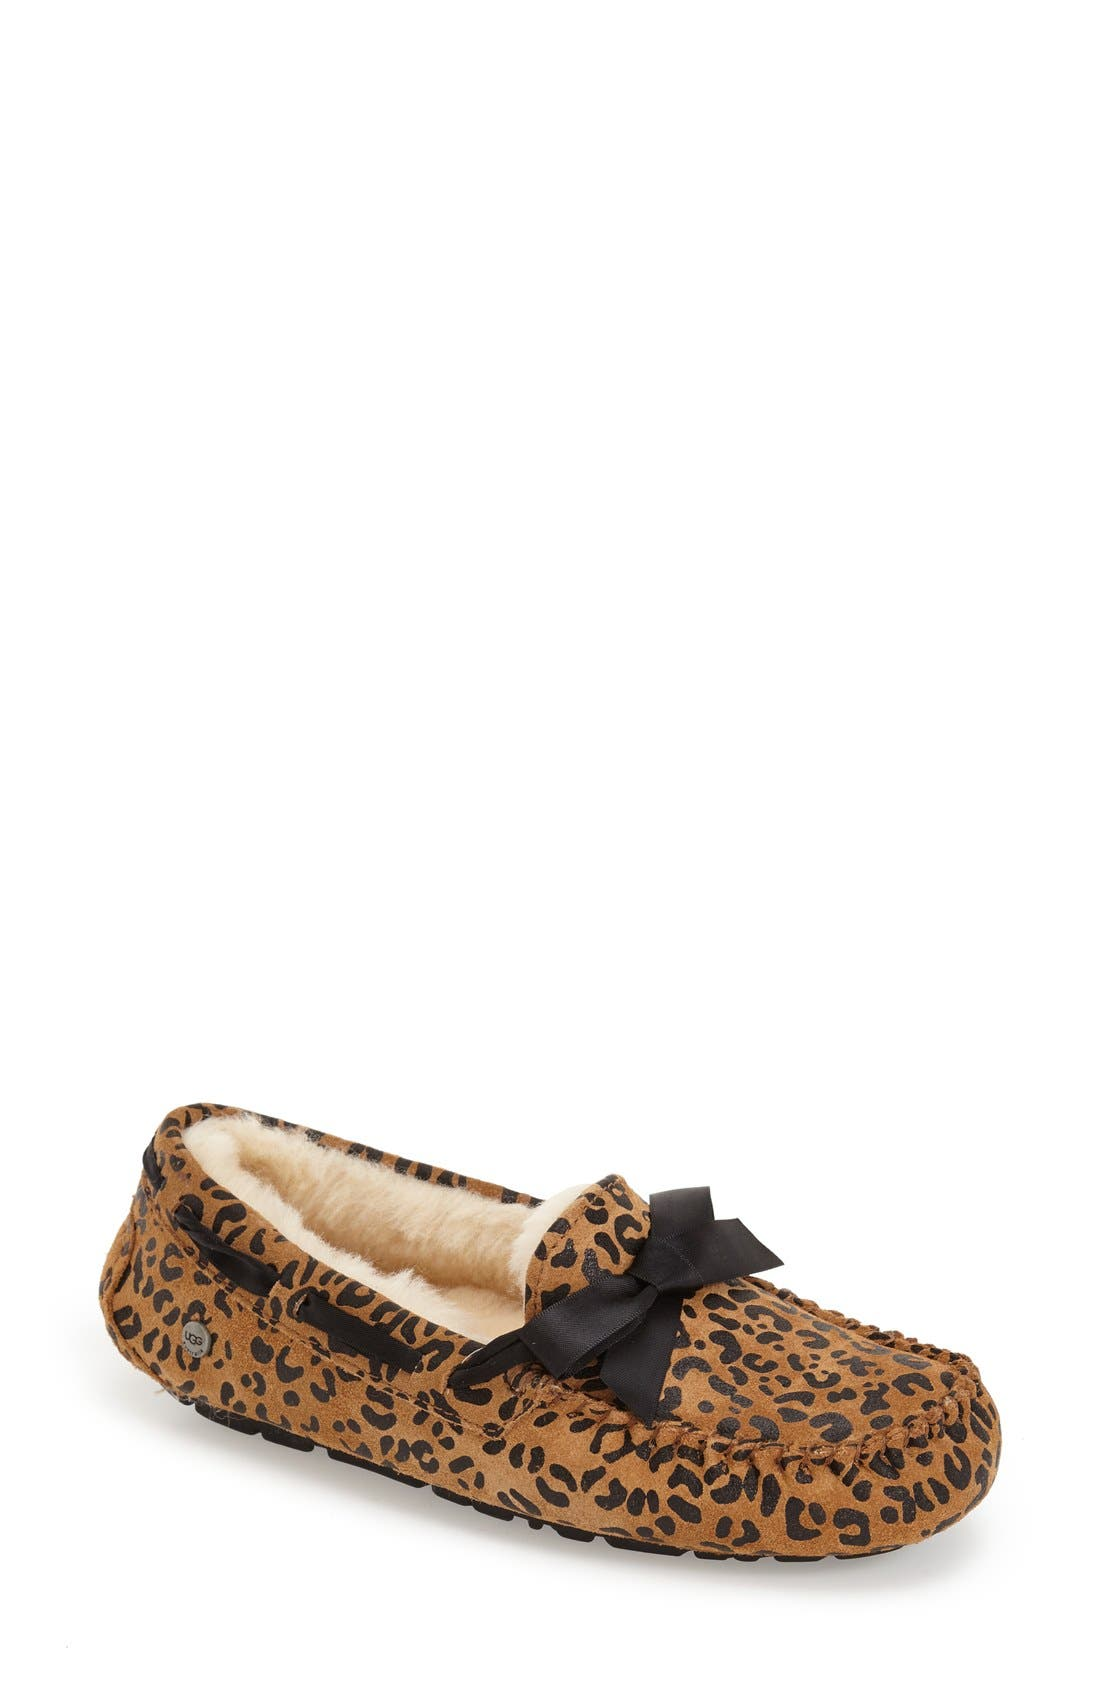 Main Image - UGG® Dakota Leopard Print Bow Slipper (Women)